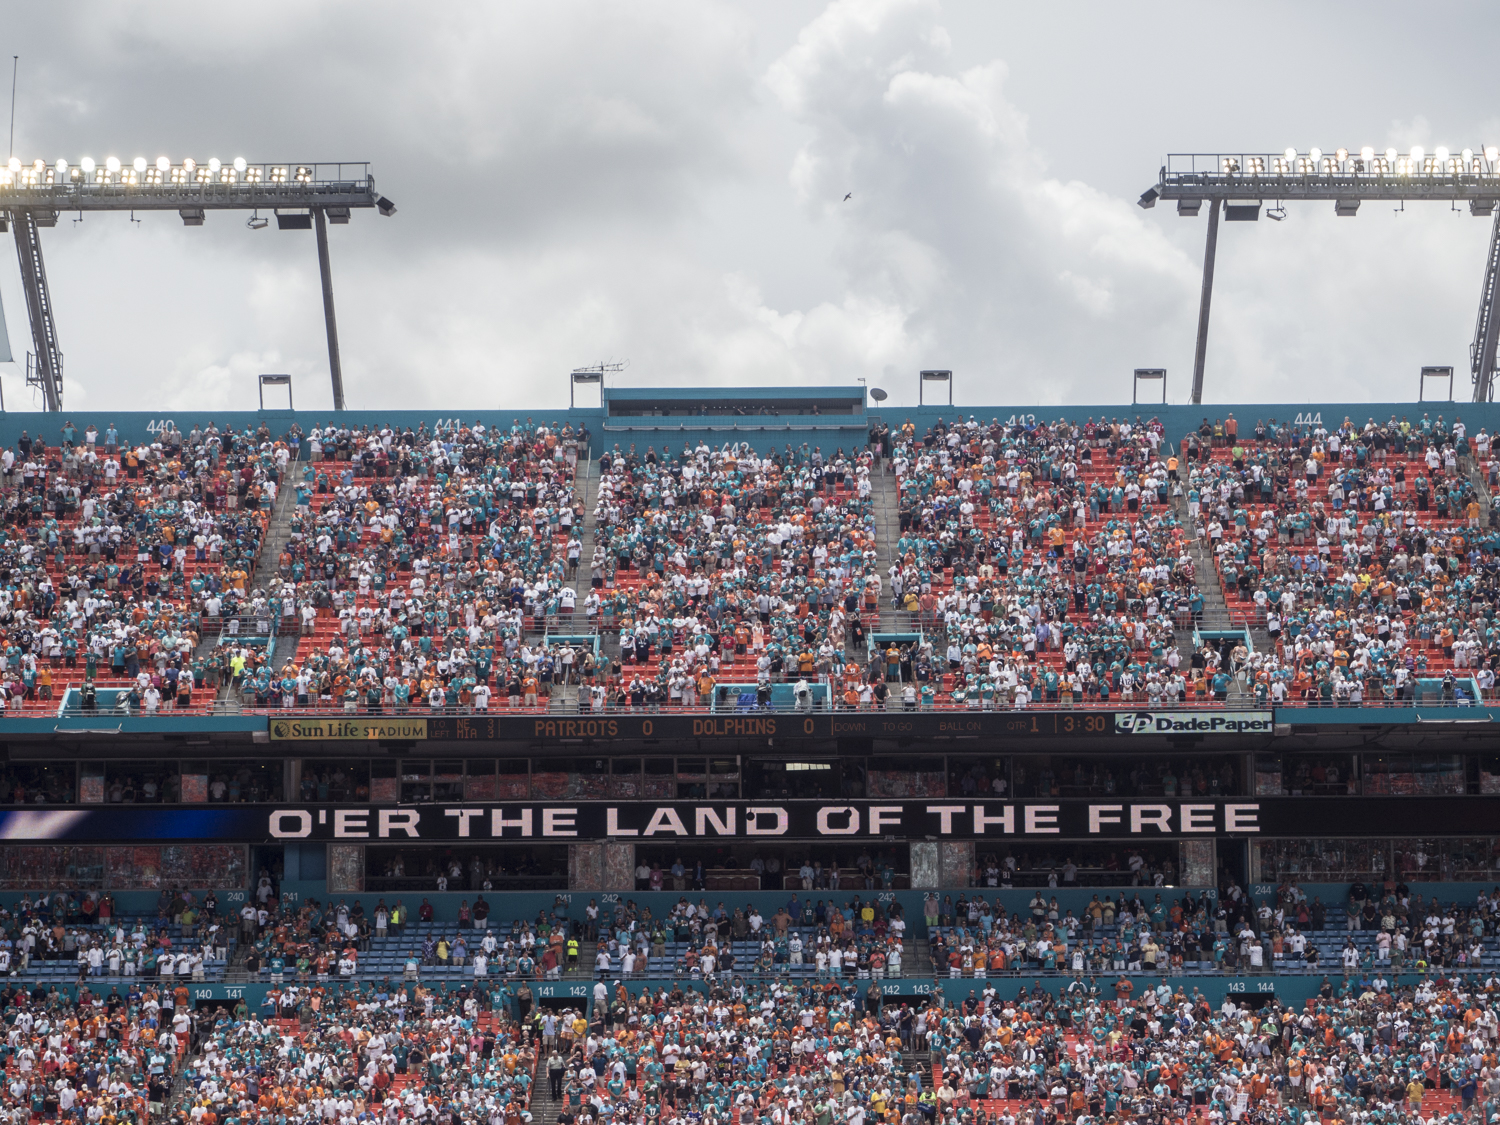 Miami Dolphins/New England Patriots 2014